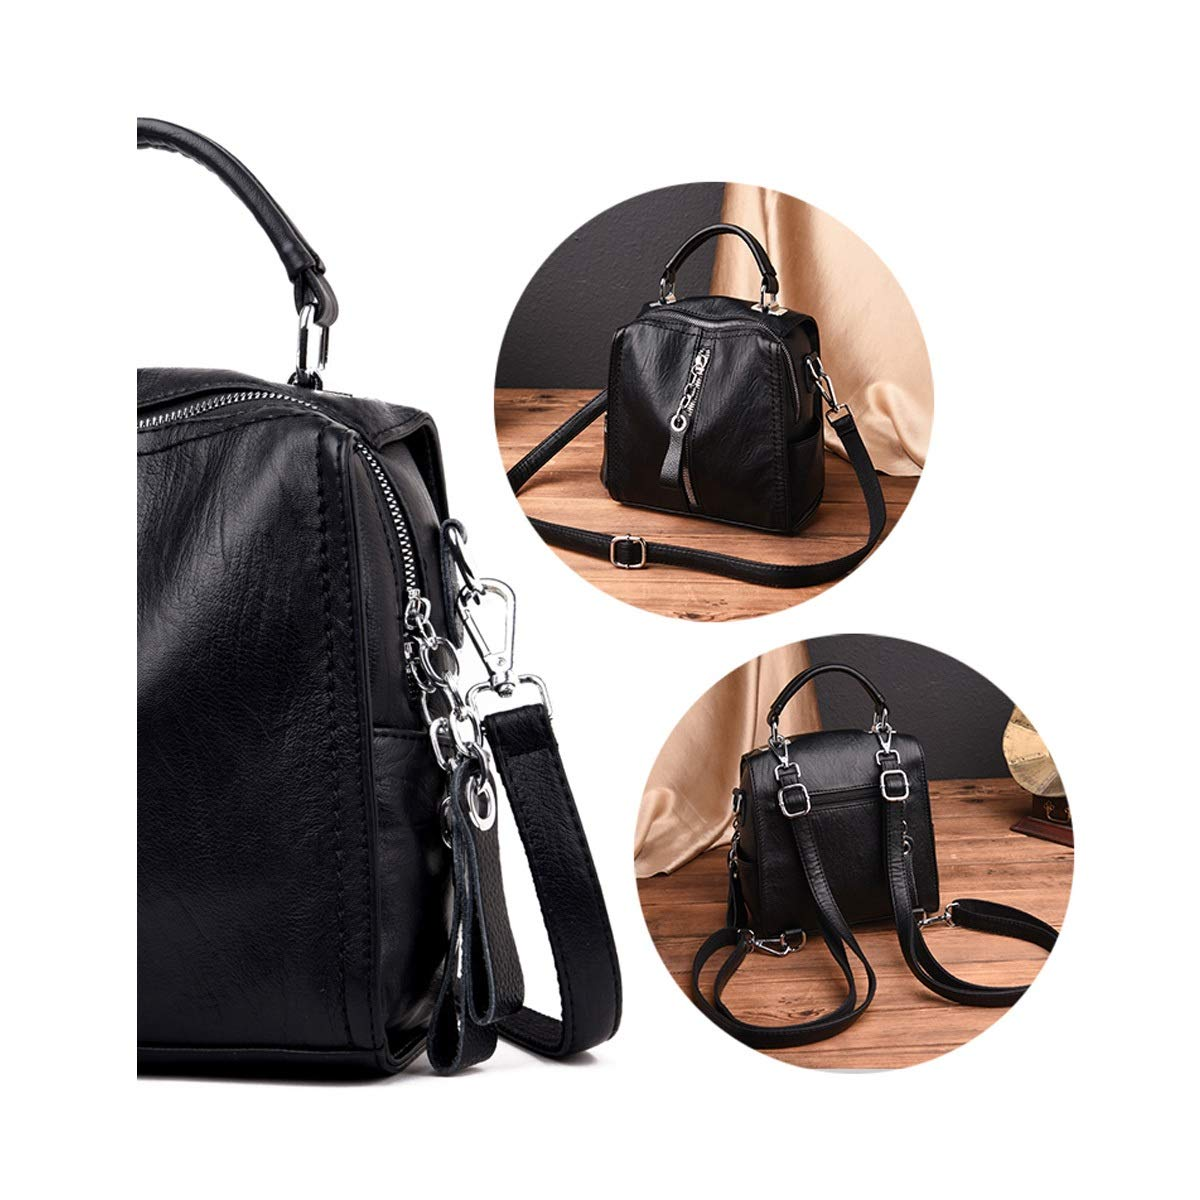 Color : Gray, Size : 21cm22cm11cm Haoyushangmao Girls Multi-Purpose Backpack for Everyday Travel//Outdoor//Travel//School//Work//Fashion//Leisure Six Colors PU Leather and Detachable Shoulder Strap.